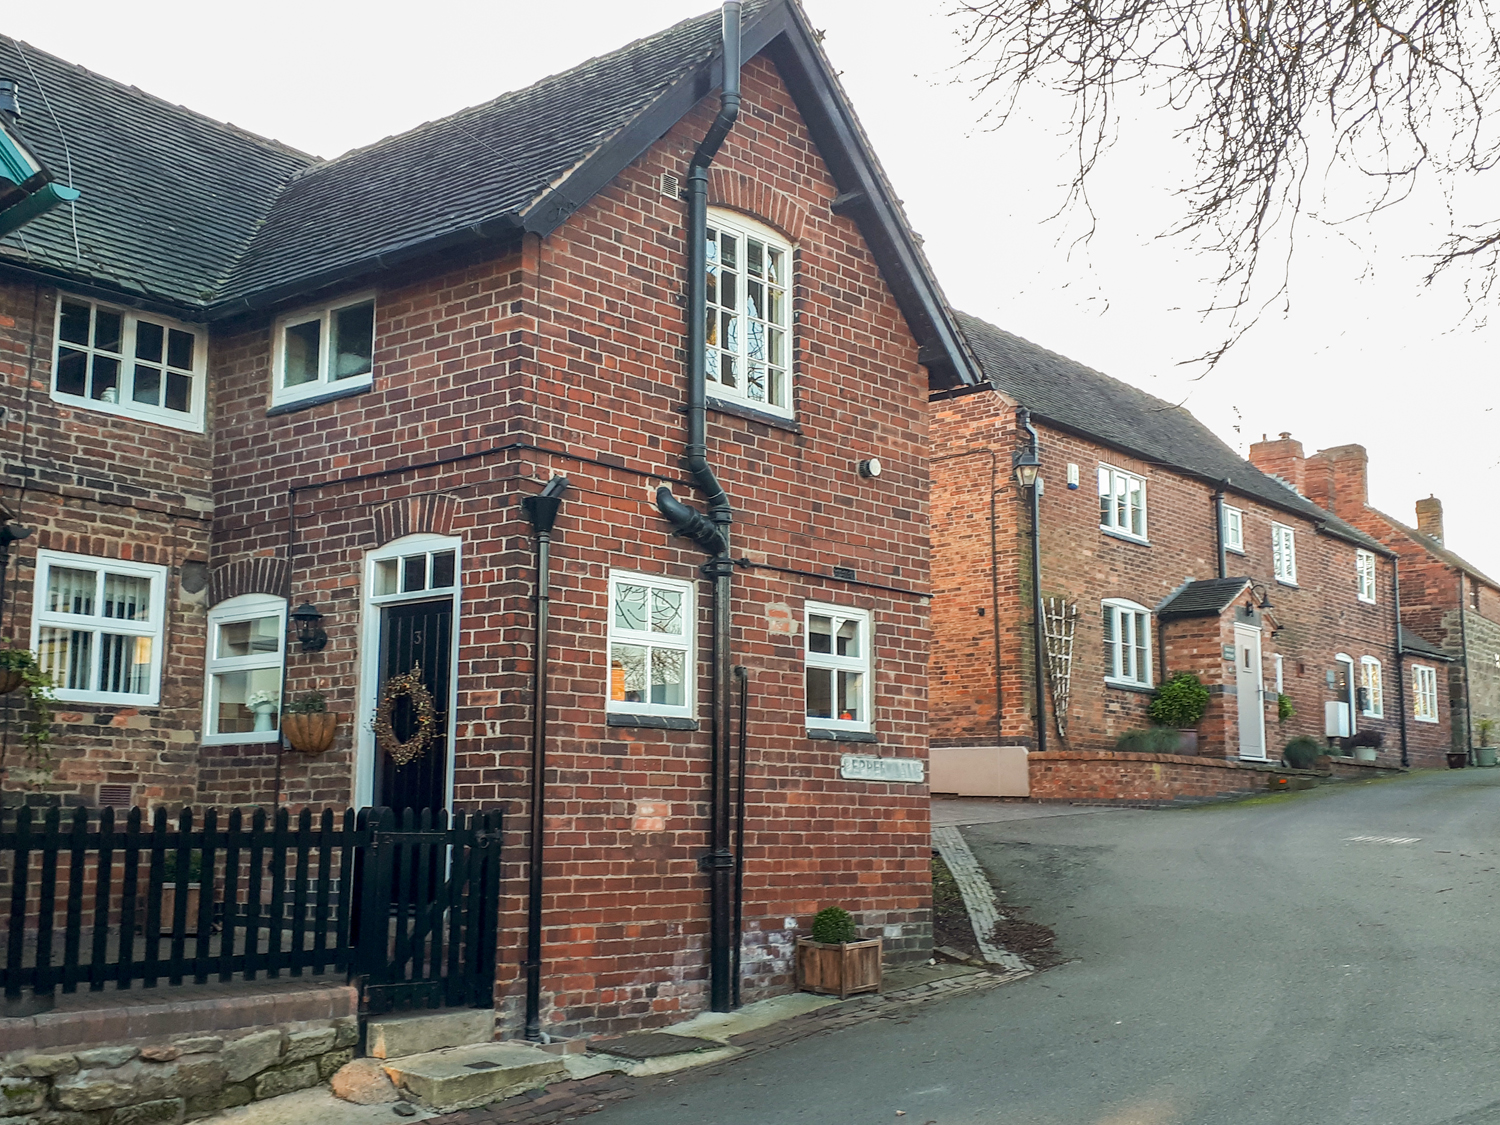 3 bedroom Cottage for rent in Ilkeston